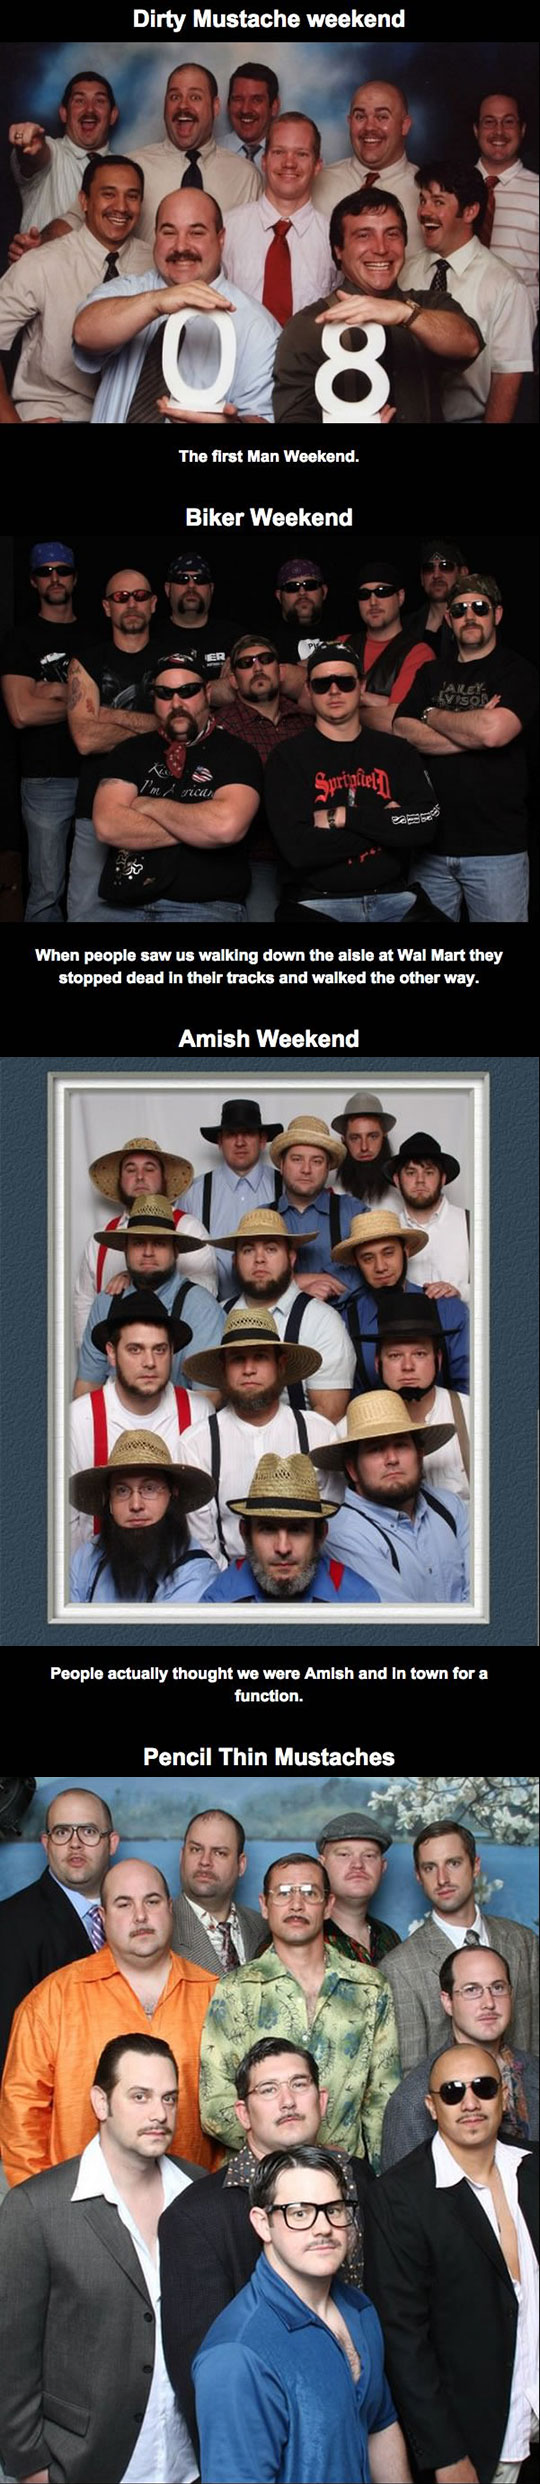 funny-friends-photograph-session-costumes